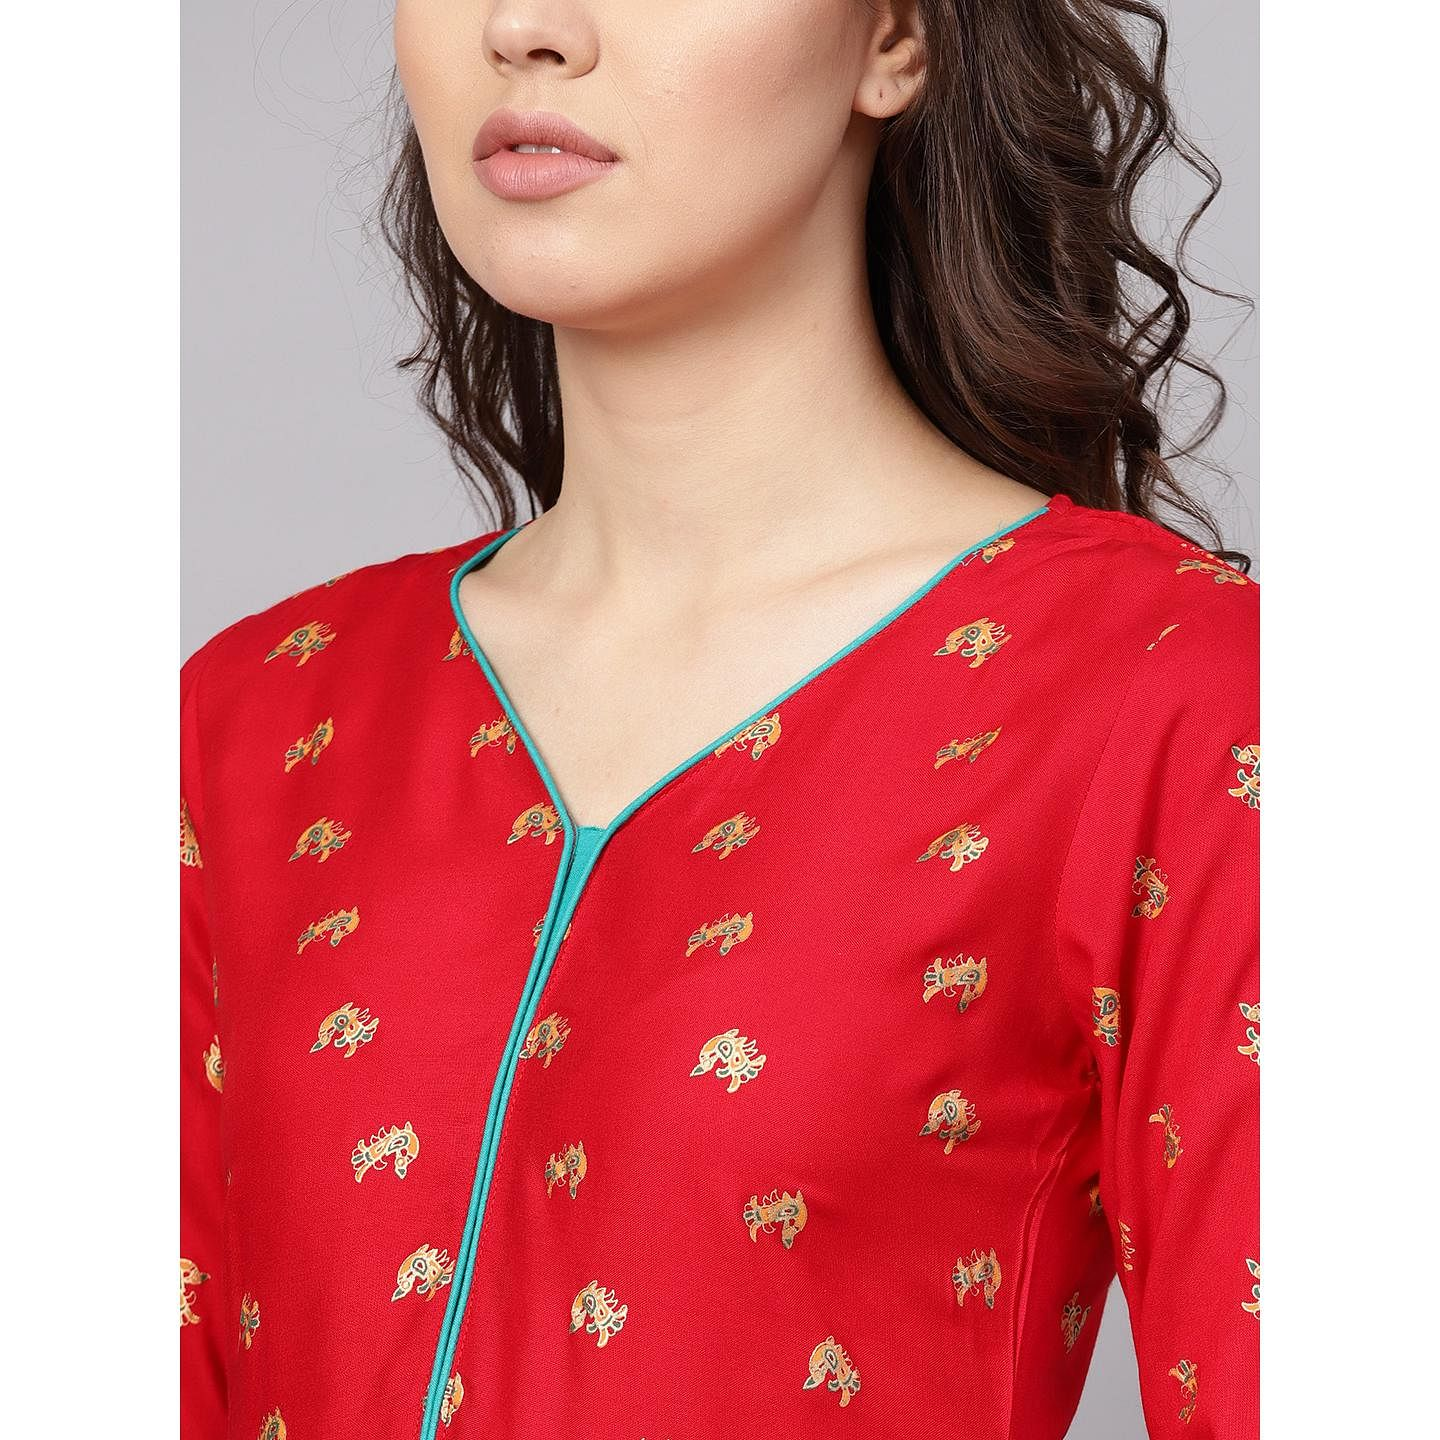 Myshka - Women's Red Printed 3/4 Sleeve V - Neck Casual Rayon Kurti